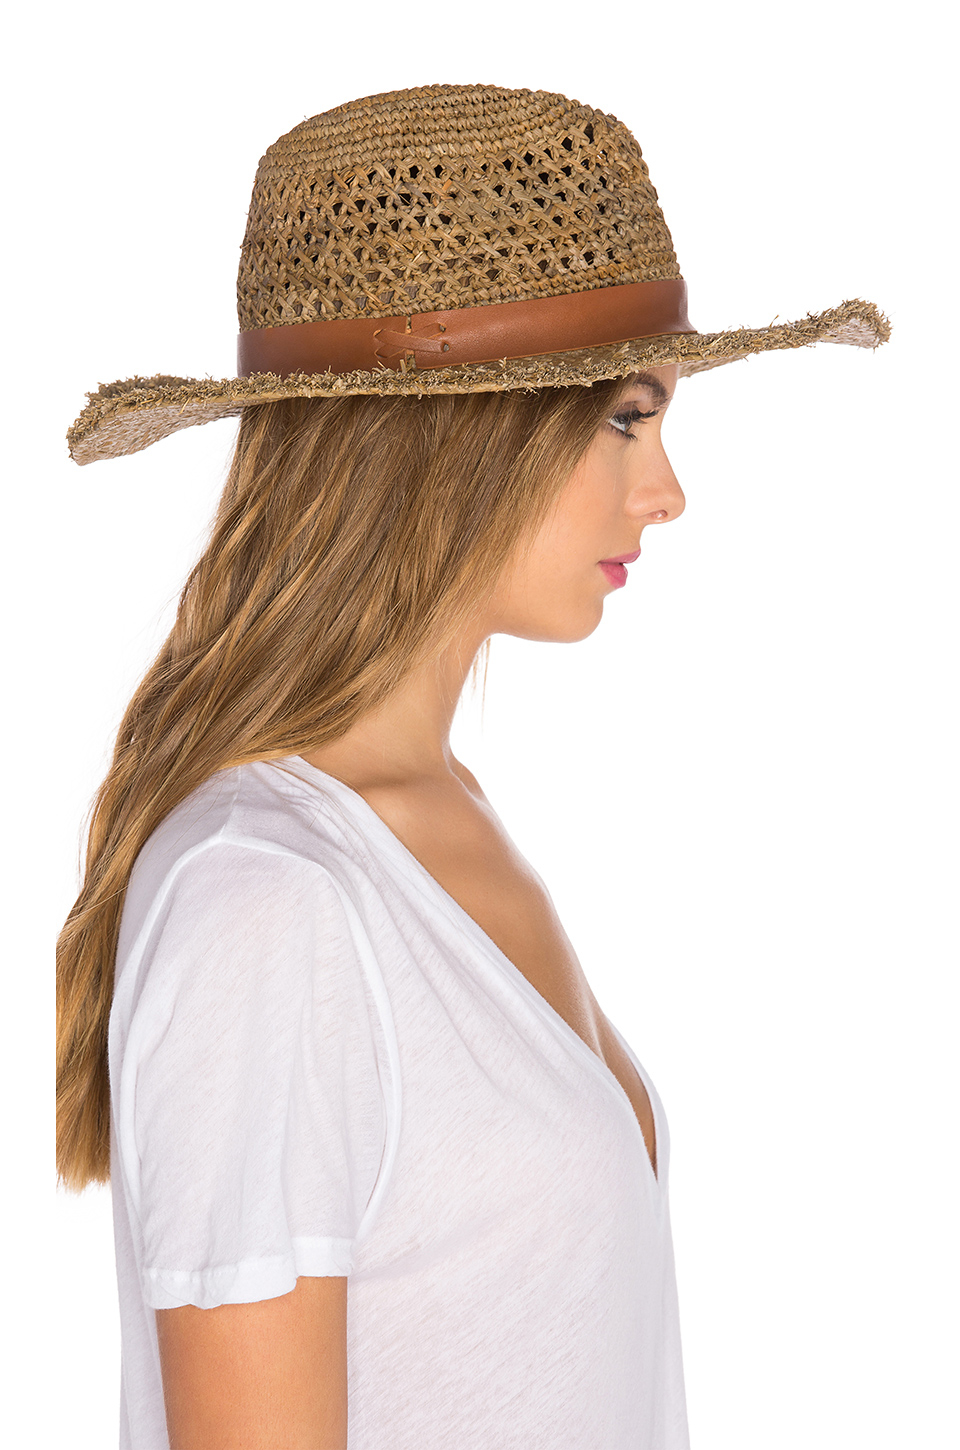 020270bf04c Lyst - Hat Attack Raffia Cane Weave Continental Hat in Brown